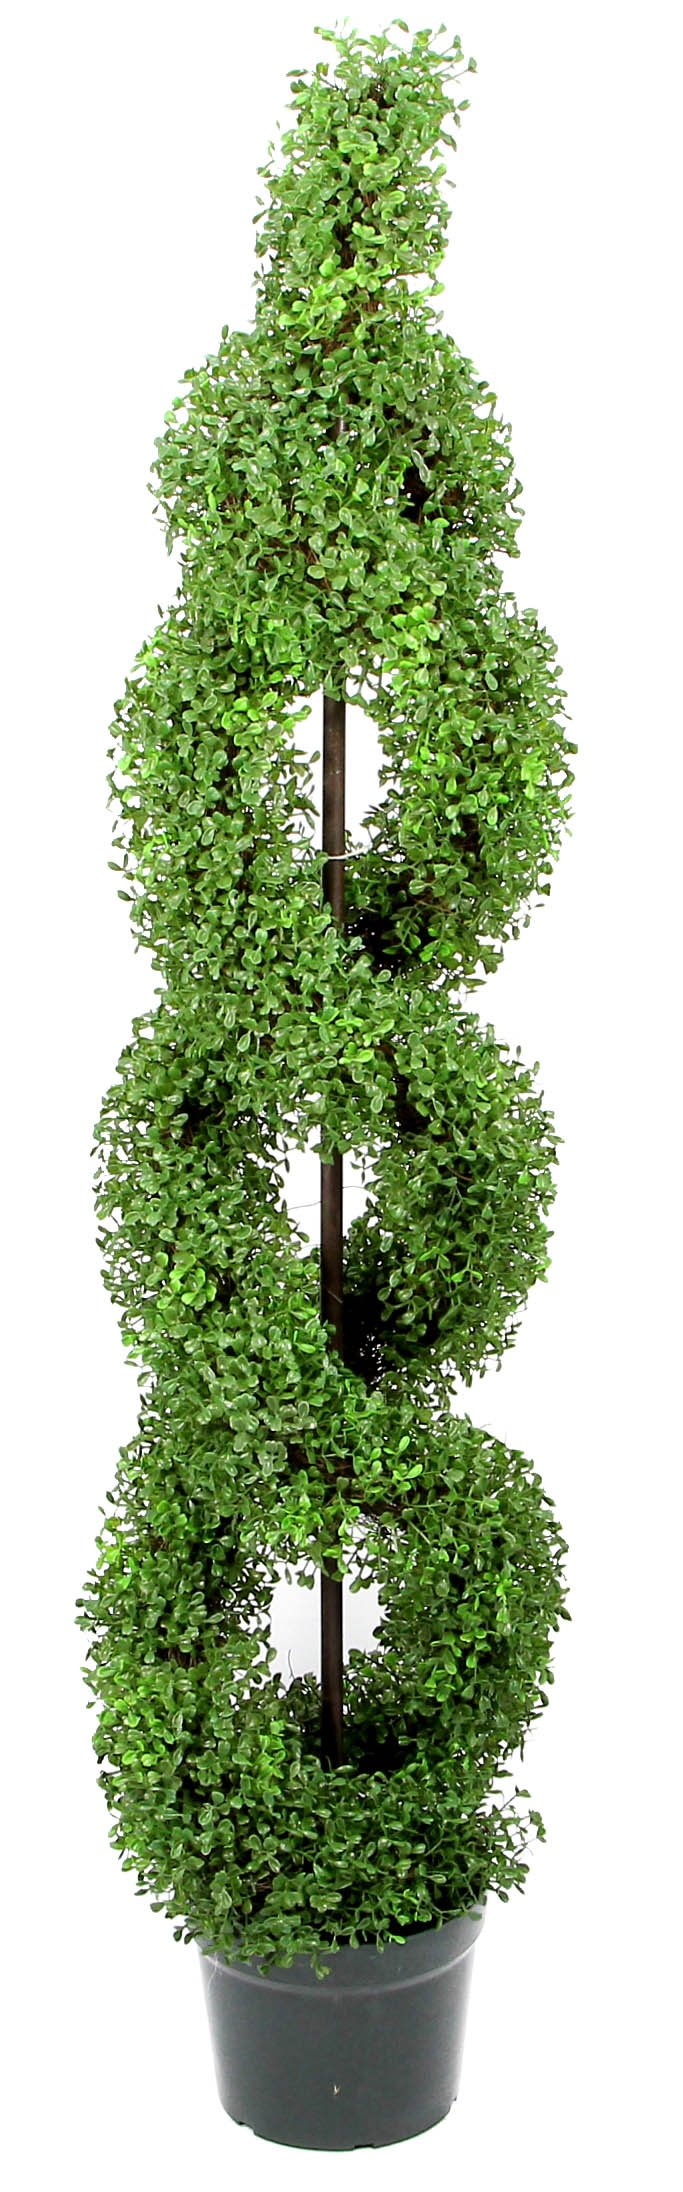 Admired-By-Nature-Artificial-Boxwood-Leave-Double-Spiral-Topiary-Plant-Tree-in-Plastic-Pot